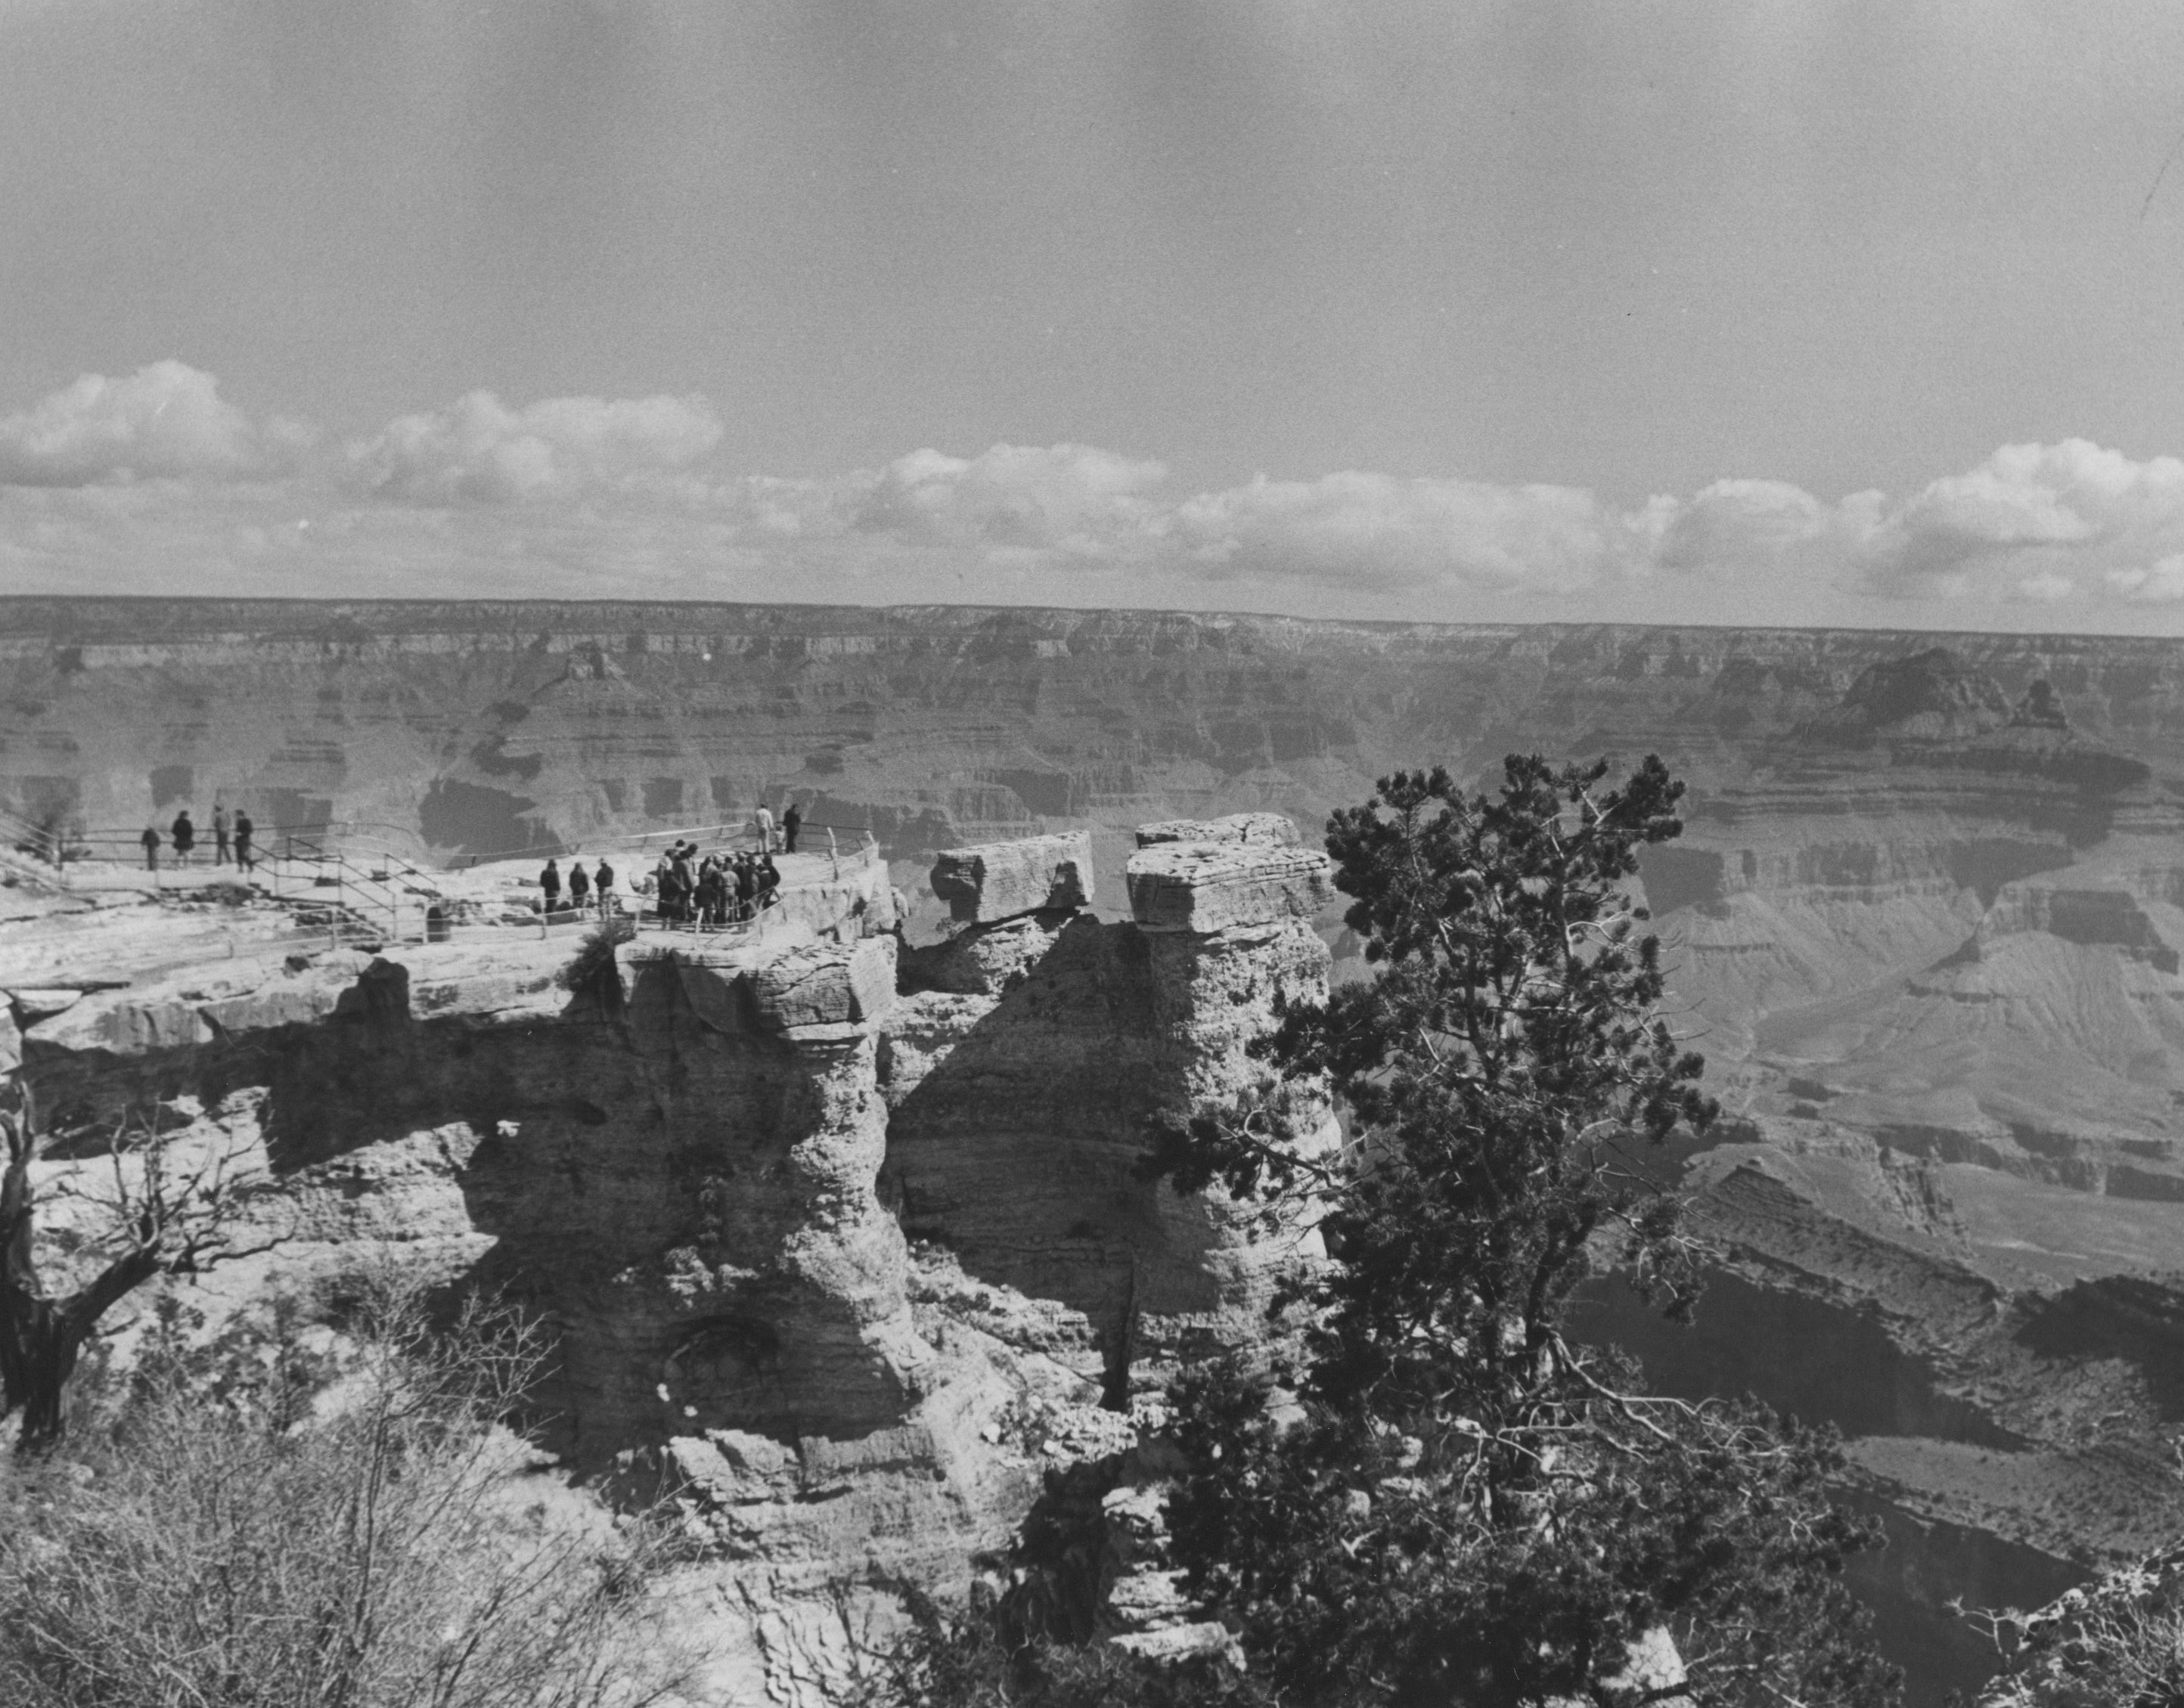 In 1973, DC science students took part in a Southwest Semester, an extended field trip from February to April, to study biology, botany, and geology in the US Southwest.  This photo is of DC's group at the Grand Canyon. The students were led by professors Mikula and Birk, and they visited not only Arizona but also New Mexico, southern California, and Big Bend National Park in Texas.